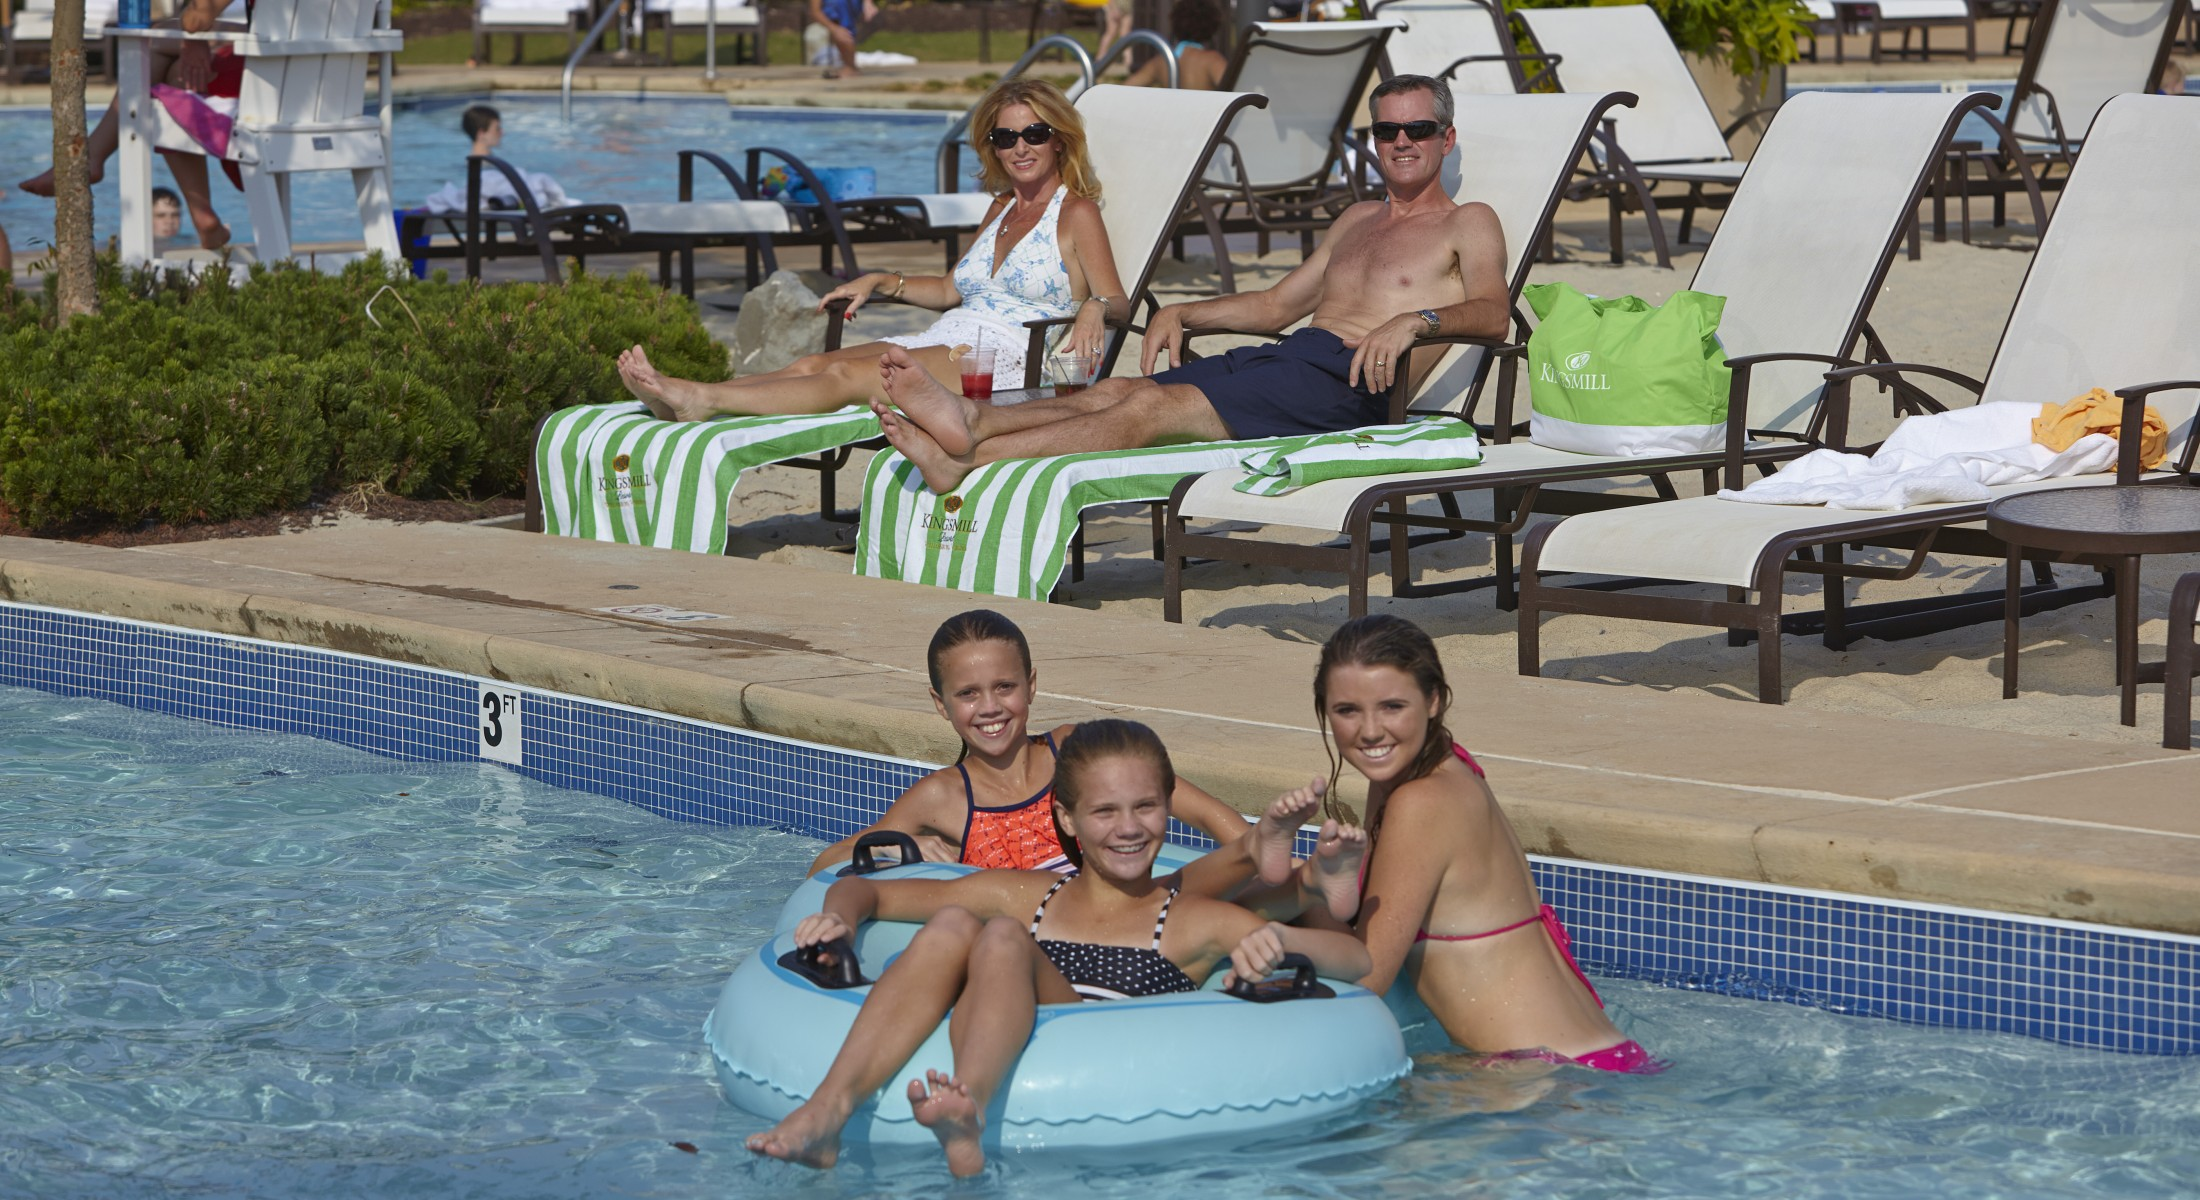 Family in outdoor pool